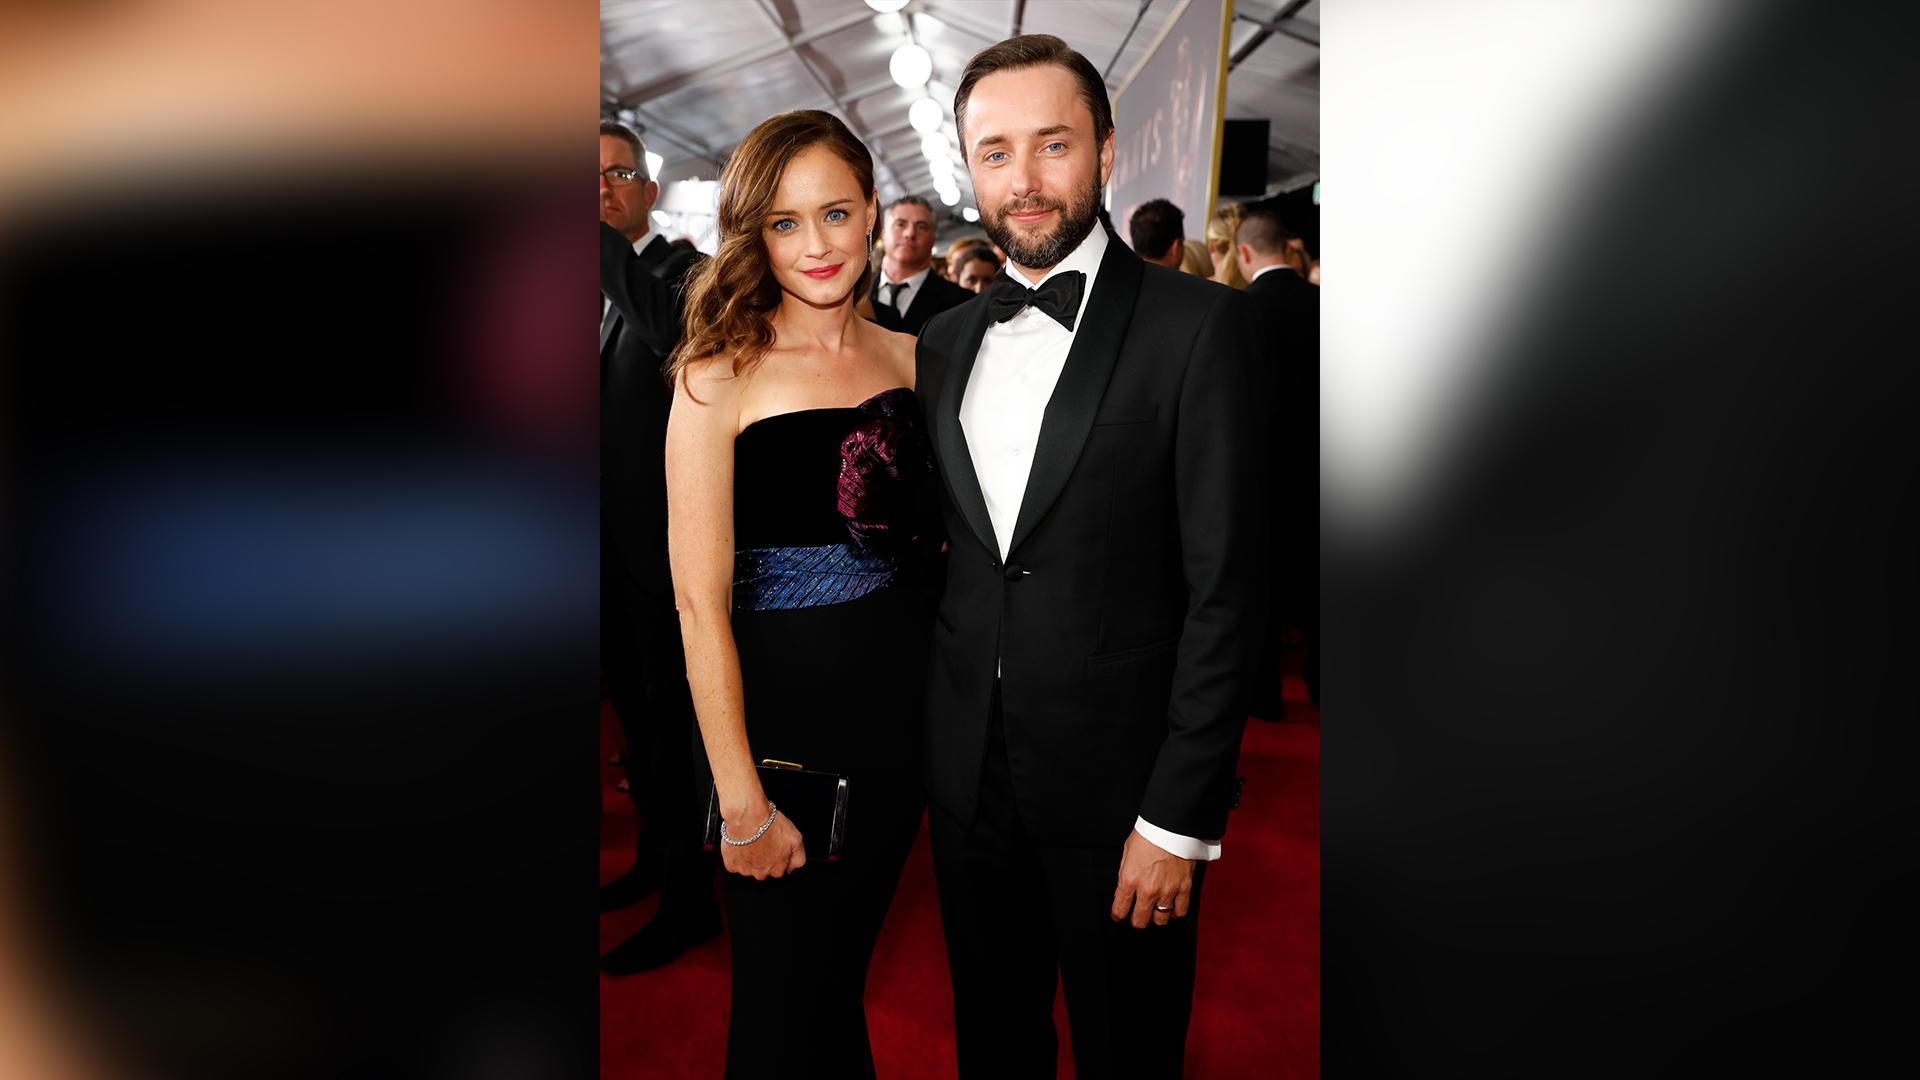 Alexis Bledel from The Handmaid's Tale and husband Vincent Kartheiser